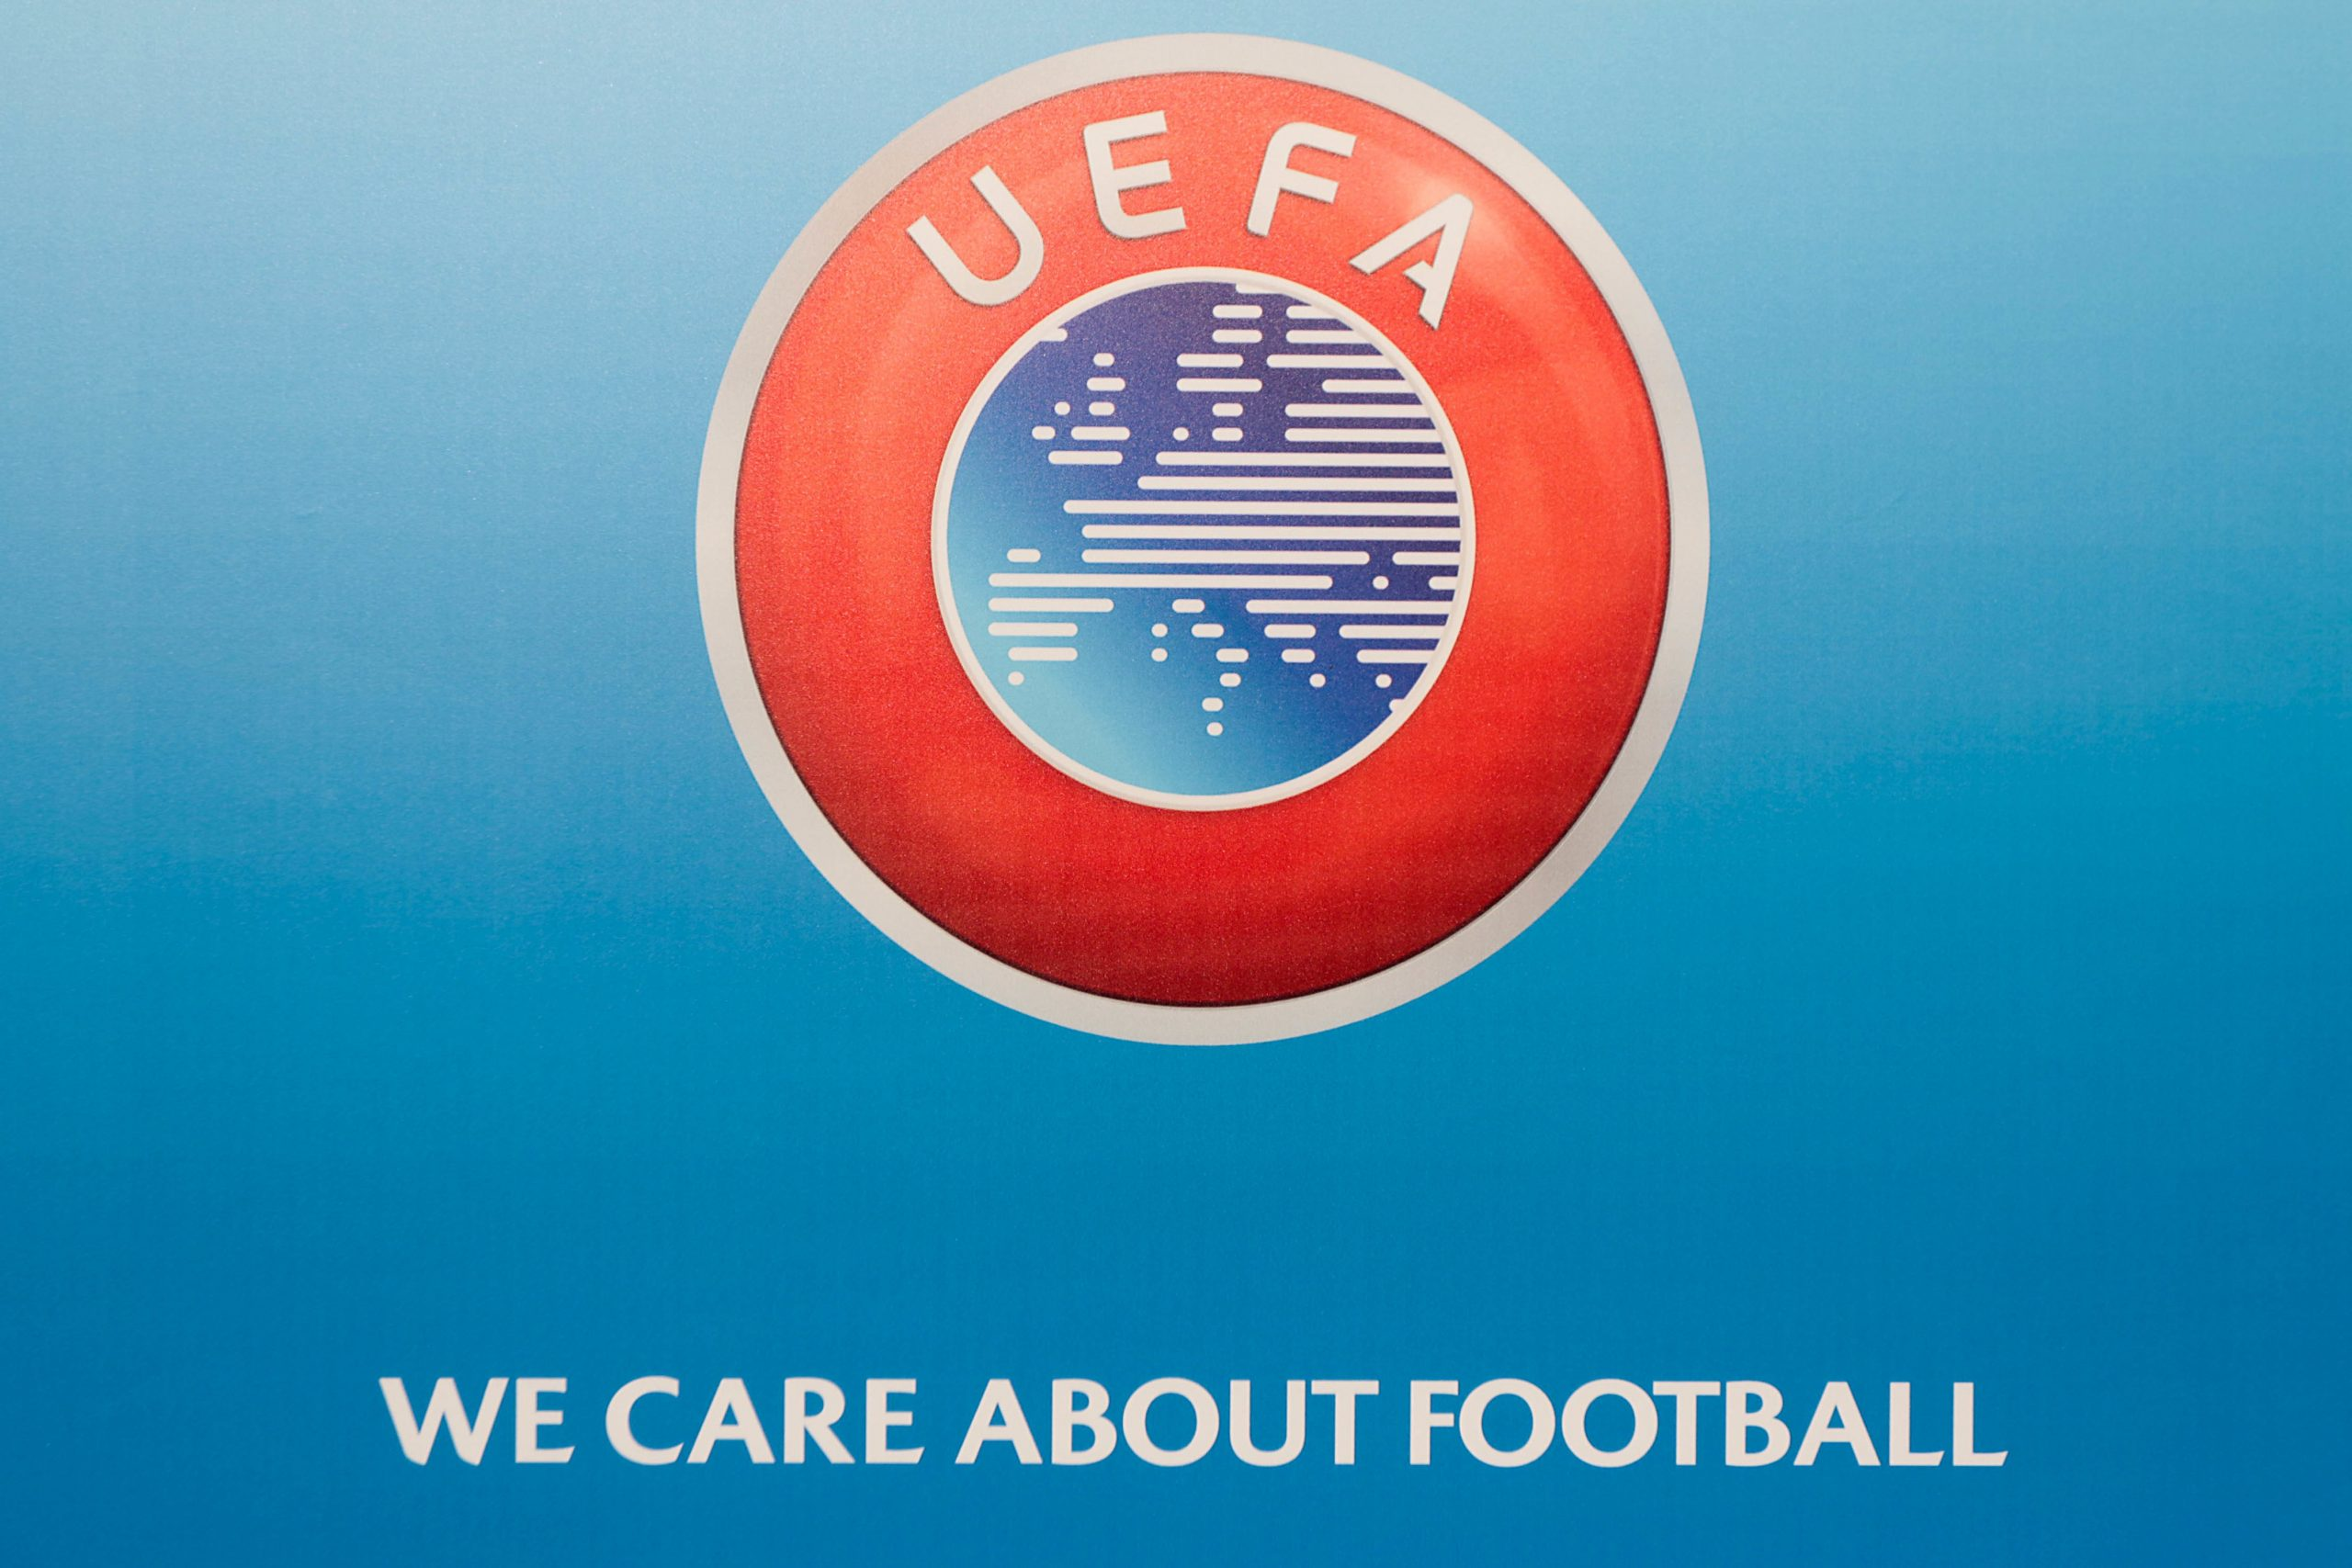 La Fédération Belge de Football a réagi à la menace de l'UEFA